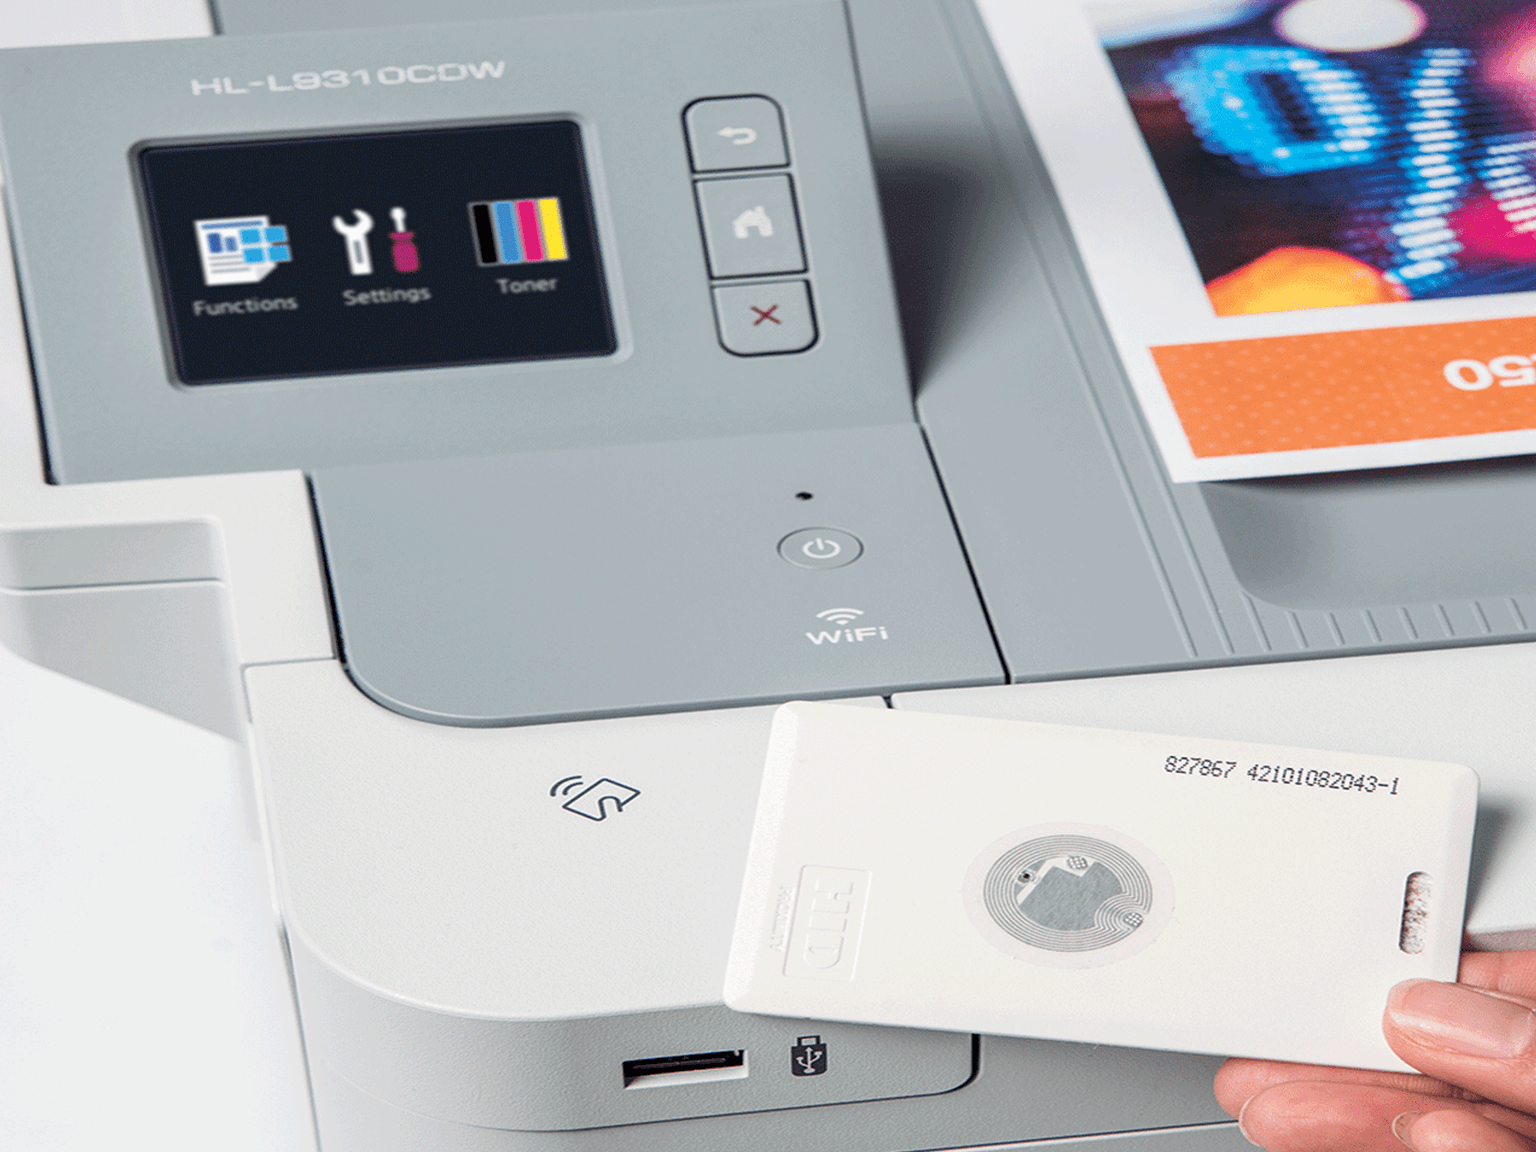 pull printing feature being used to release a document